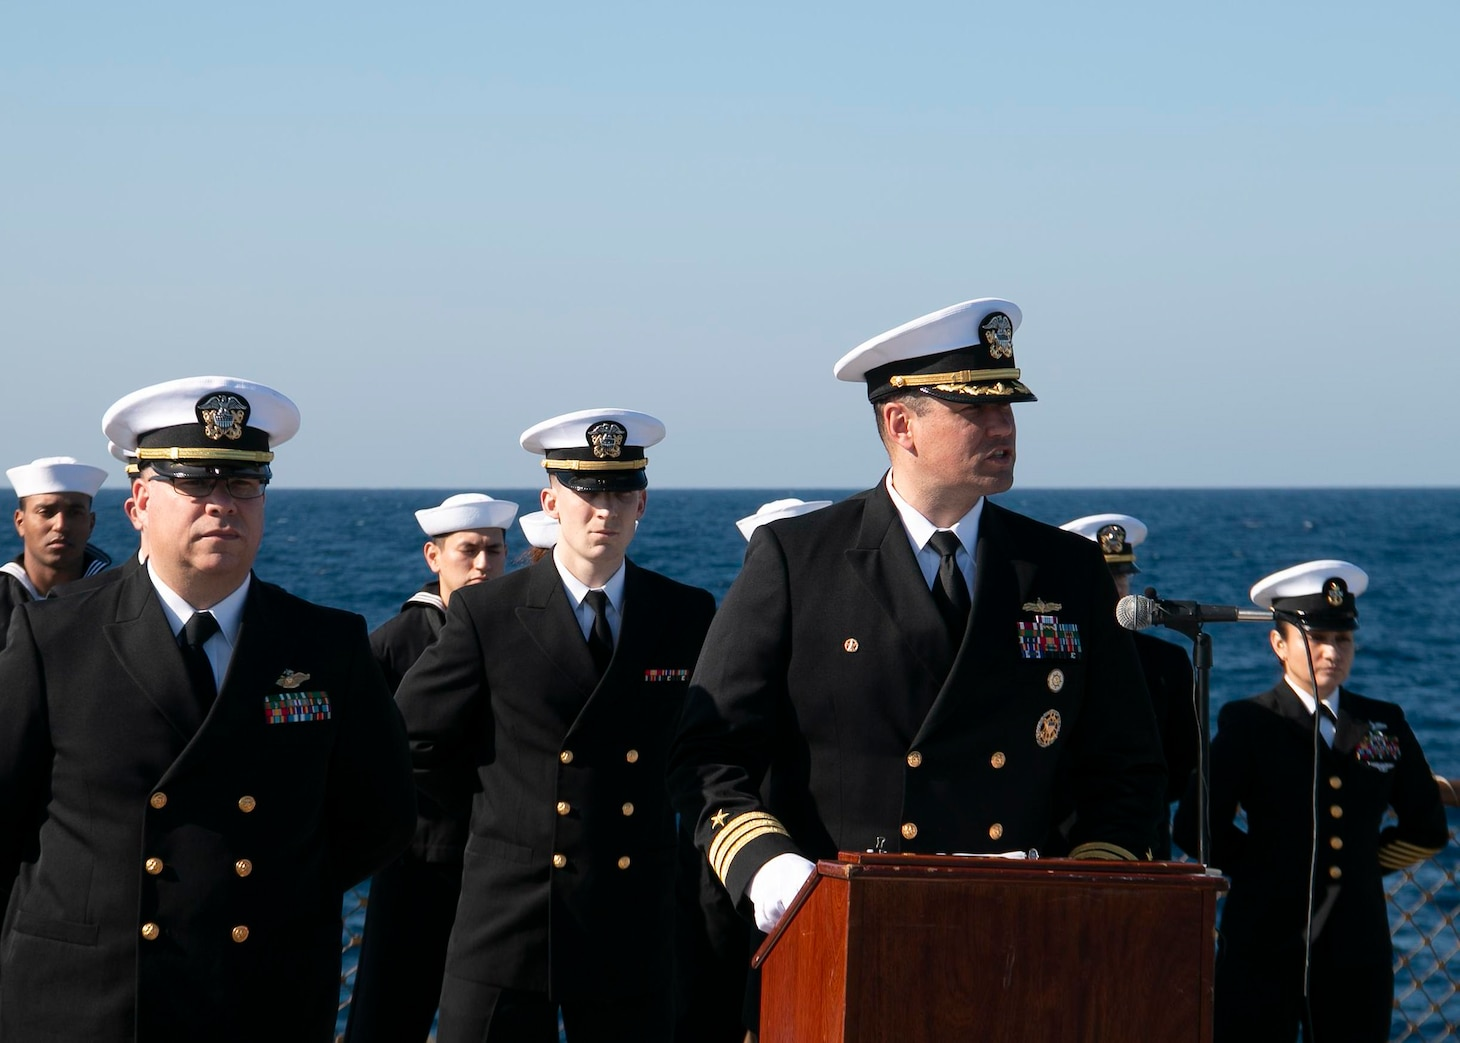 210304-N-RG171-0261 MEDITERRANEAN SEA (Mar. 4, 2021) Cmdr. Matthew Curnen, commanding officer of the Arleigh Burke-class guided-missile destroyer USS Donald Cook (DDG 75), front right, speaks during a burial-at-sea, Mar. 4, 2021. Donald Cook, forward-deployed to Rota, Spain, is on patrol in the U.S. Sixth Fleet area of operations in support of regional allies and partners and U.S. national security in Europe and Africa. (U.S. Navy photo by Machinist's Mate 1st Class Peter Stitzel/Released)